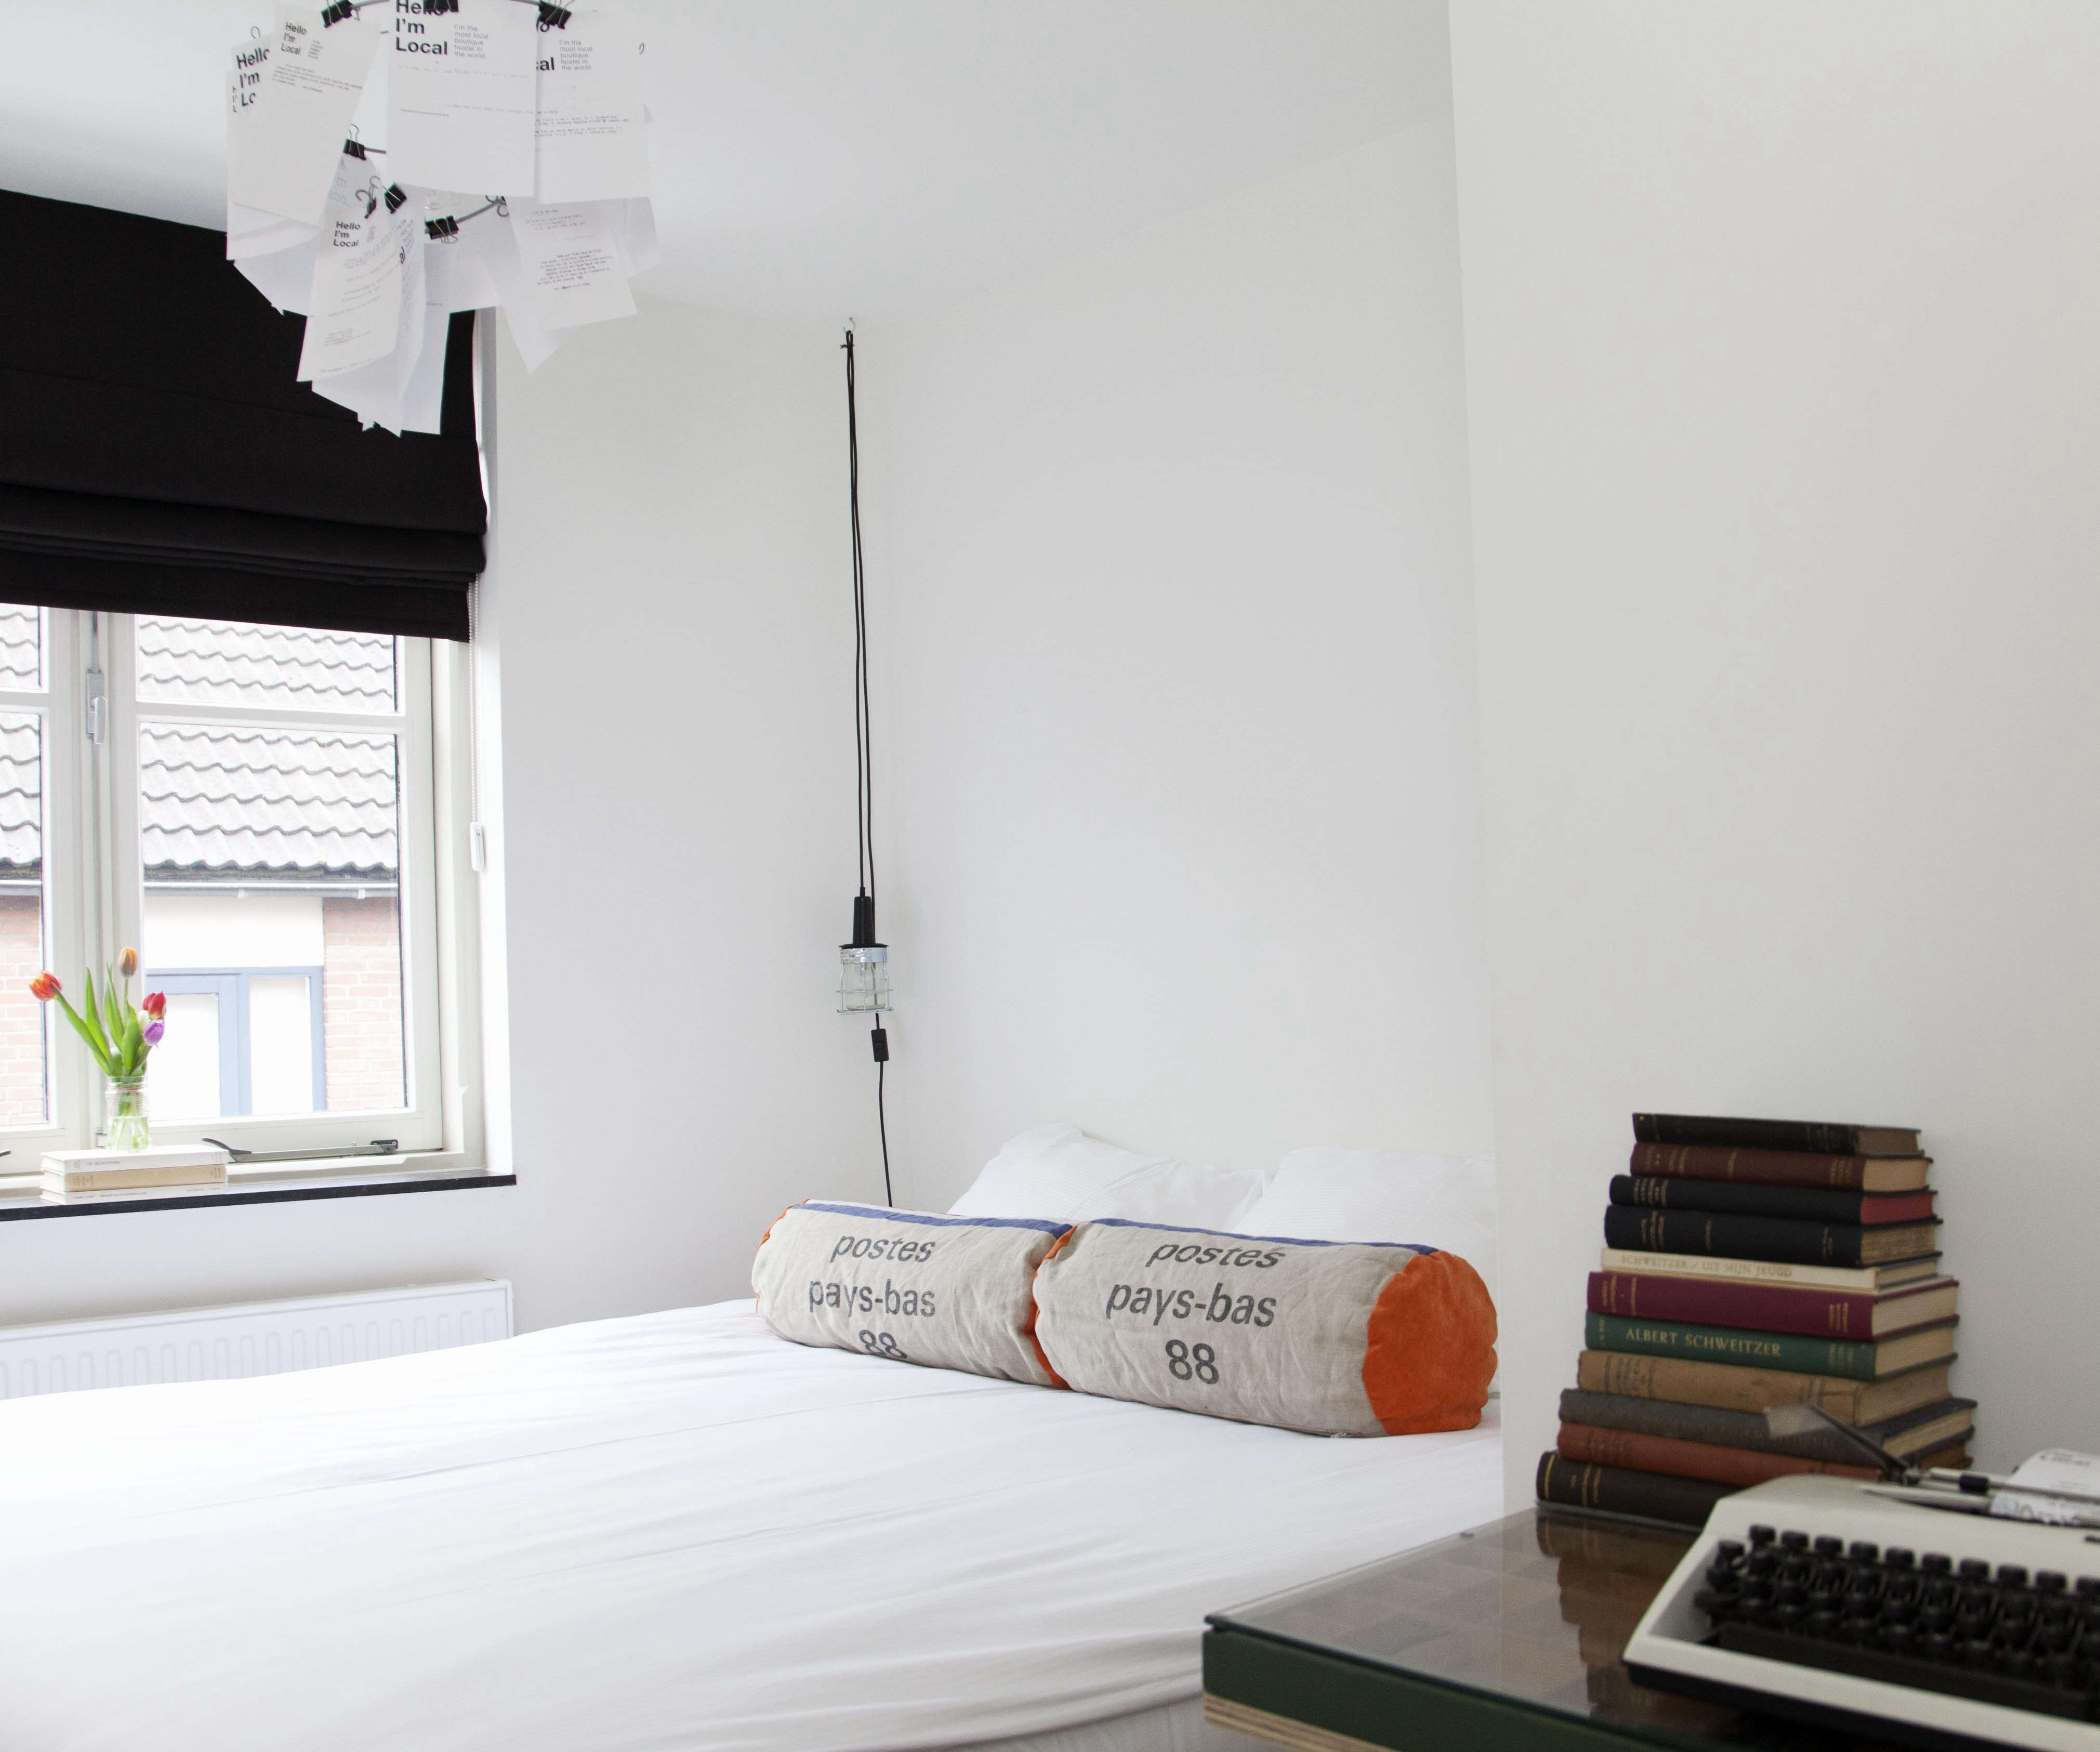 A Quirky Hotel In The Netherlands With Dozens Of Design Ideas To